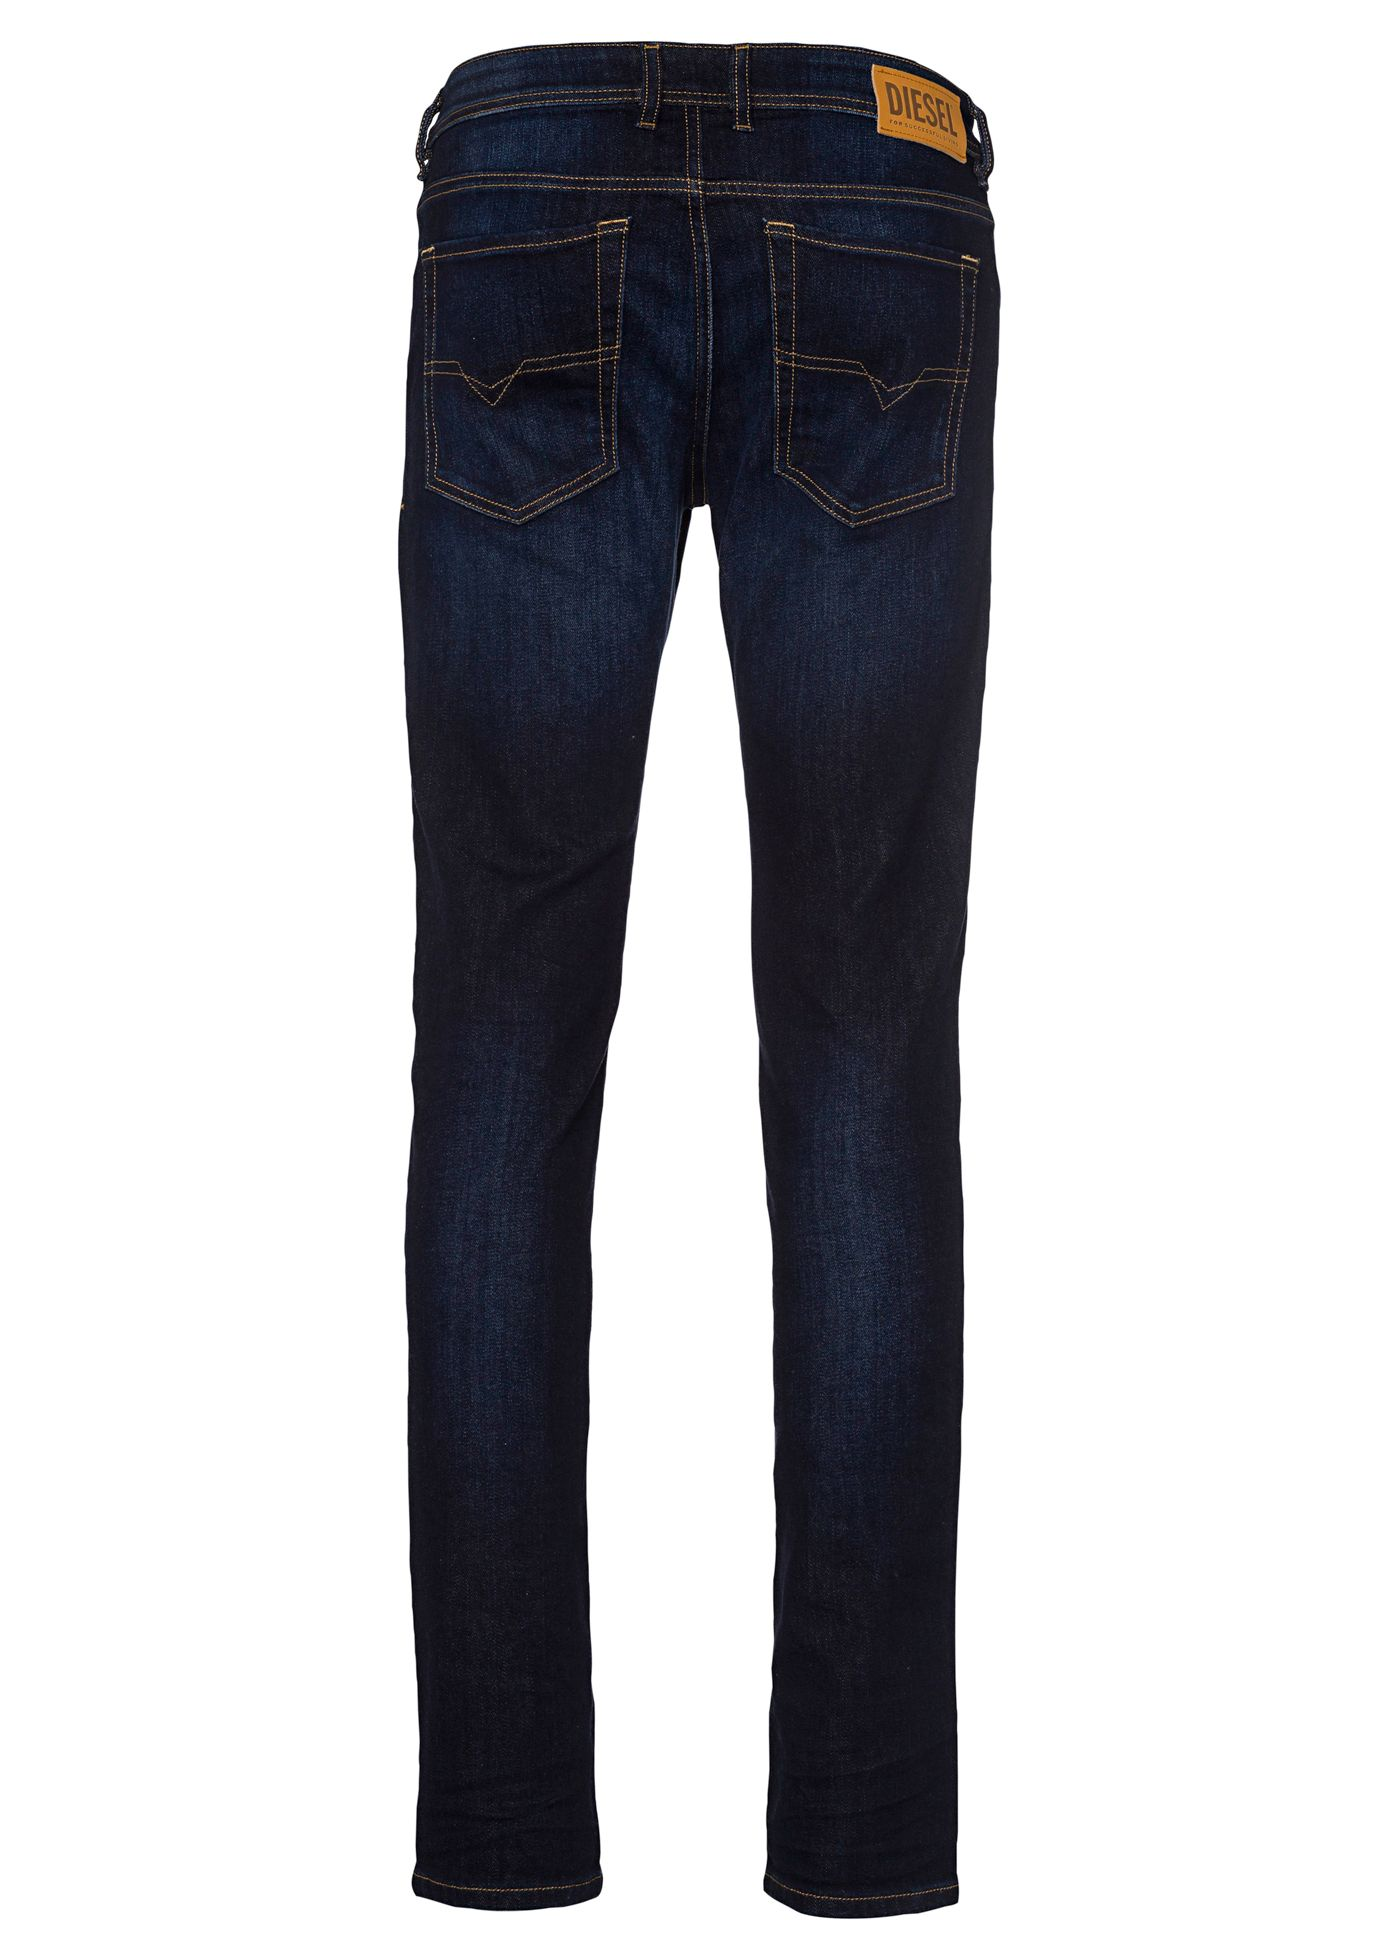 SLEENKER-X L.32 TROUSERS image number 1